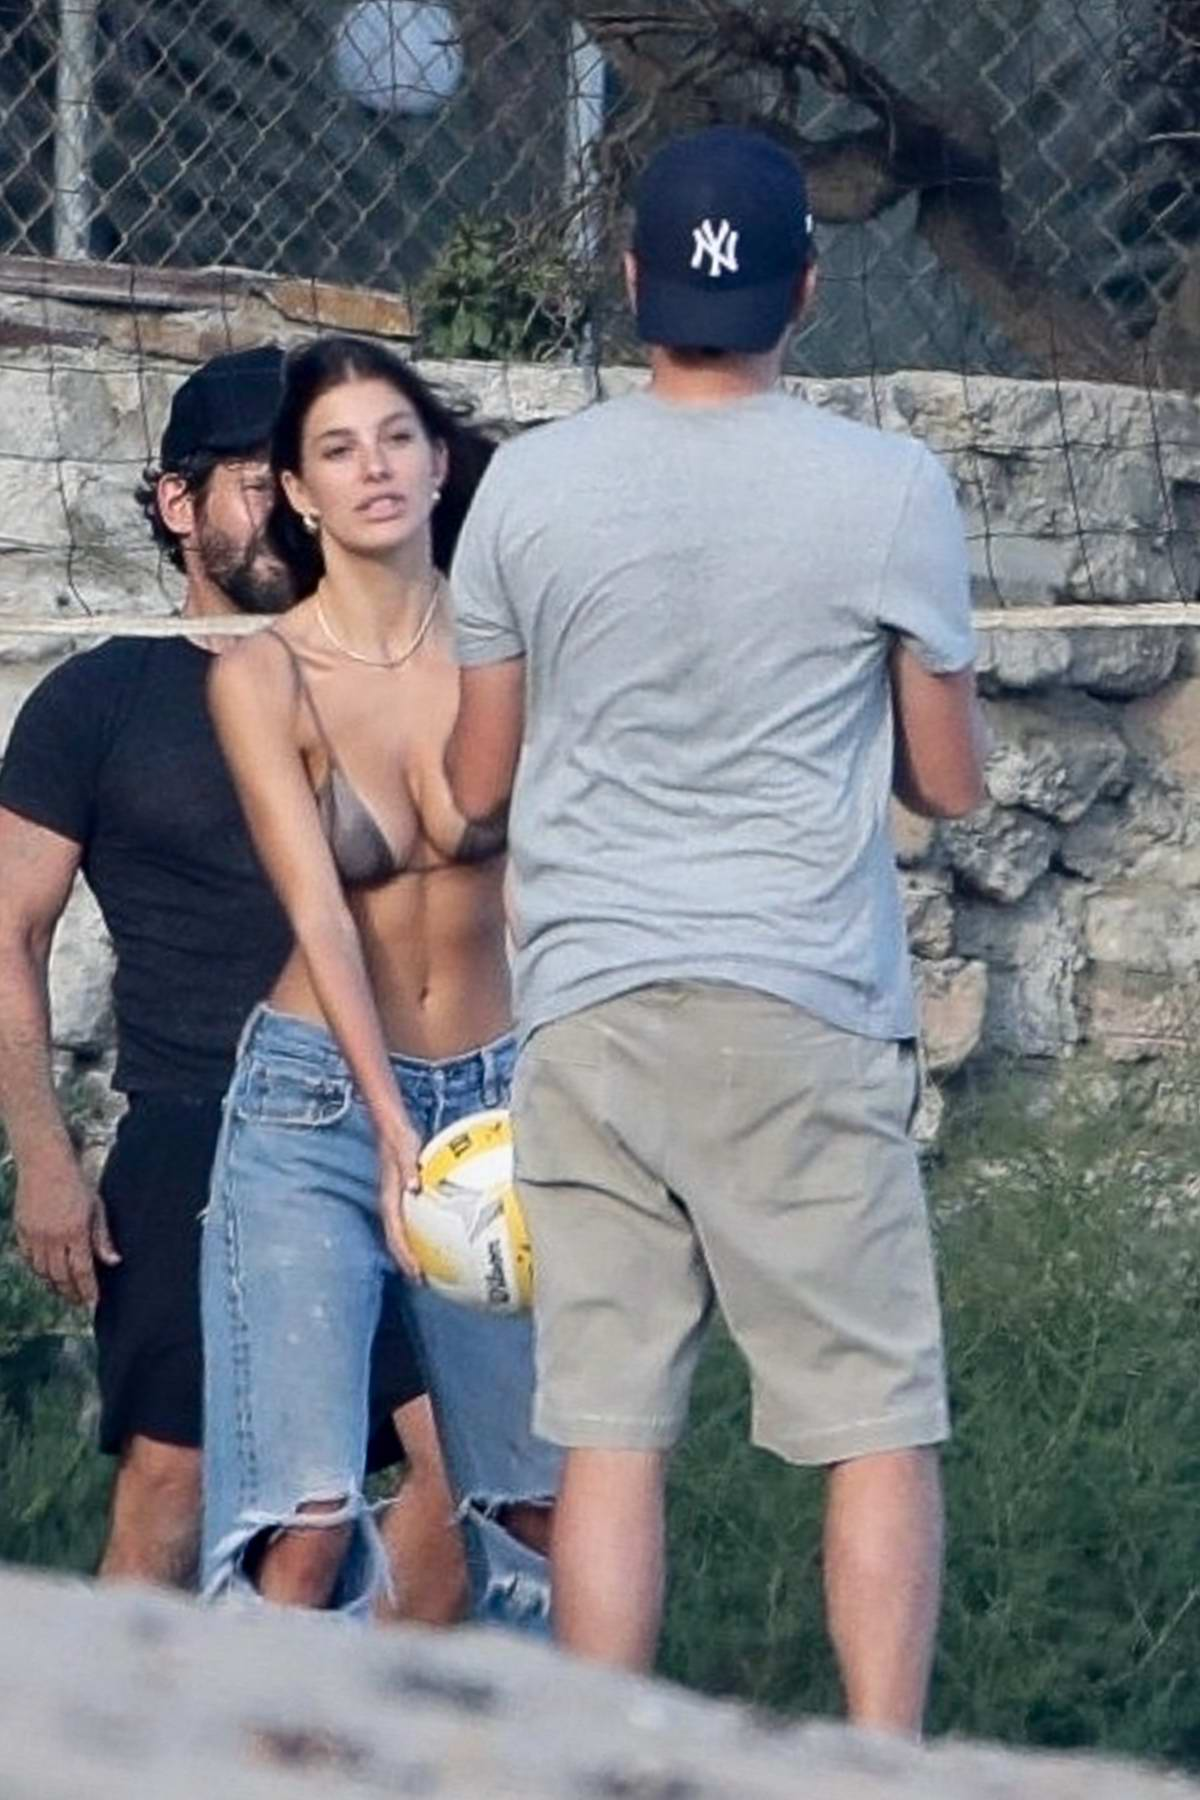 Camila Morrone and Leonardo DiCaprio seen playing beach volleyball with April Love Geary and Lukas Haas in Malibu, California